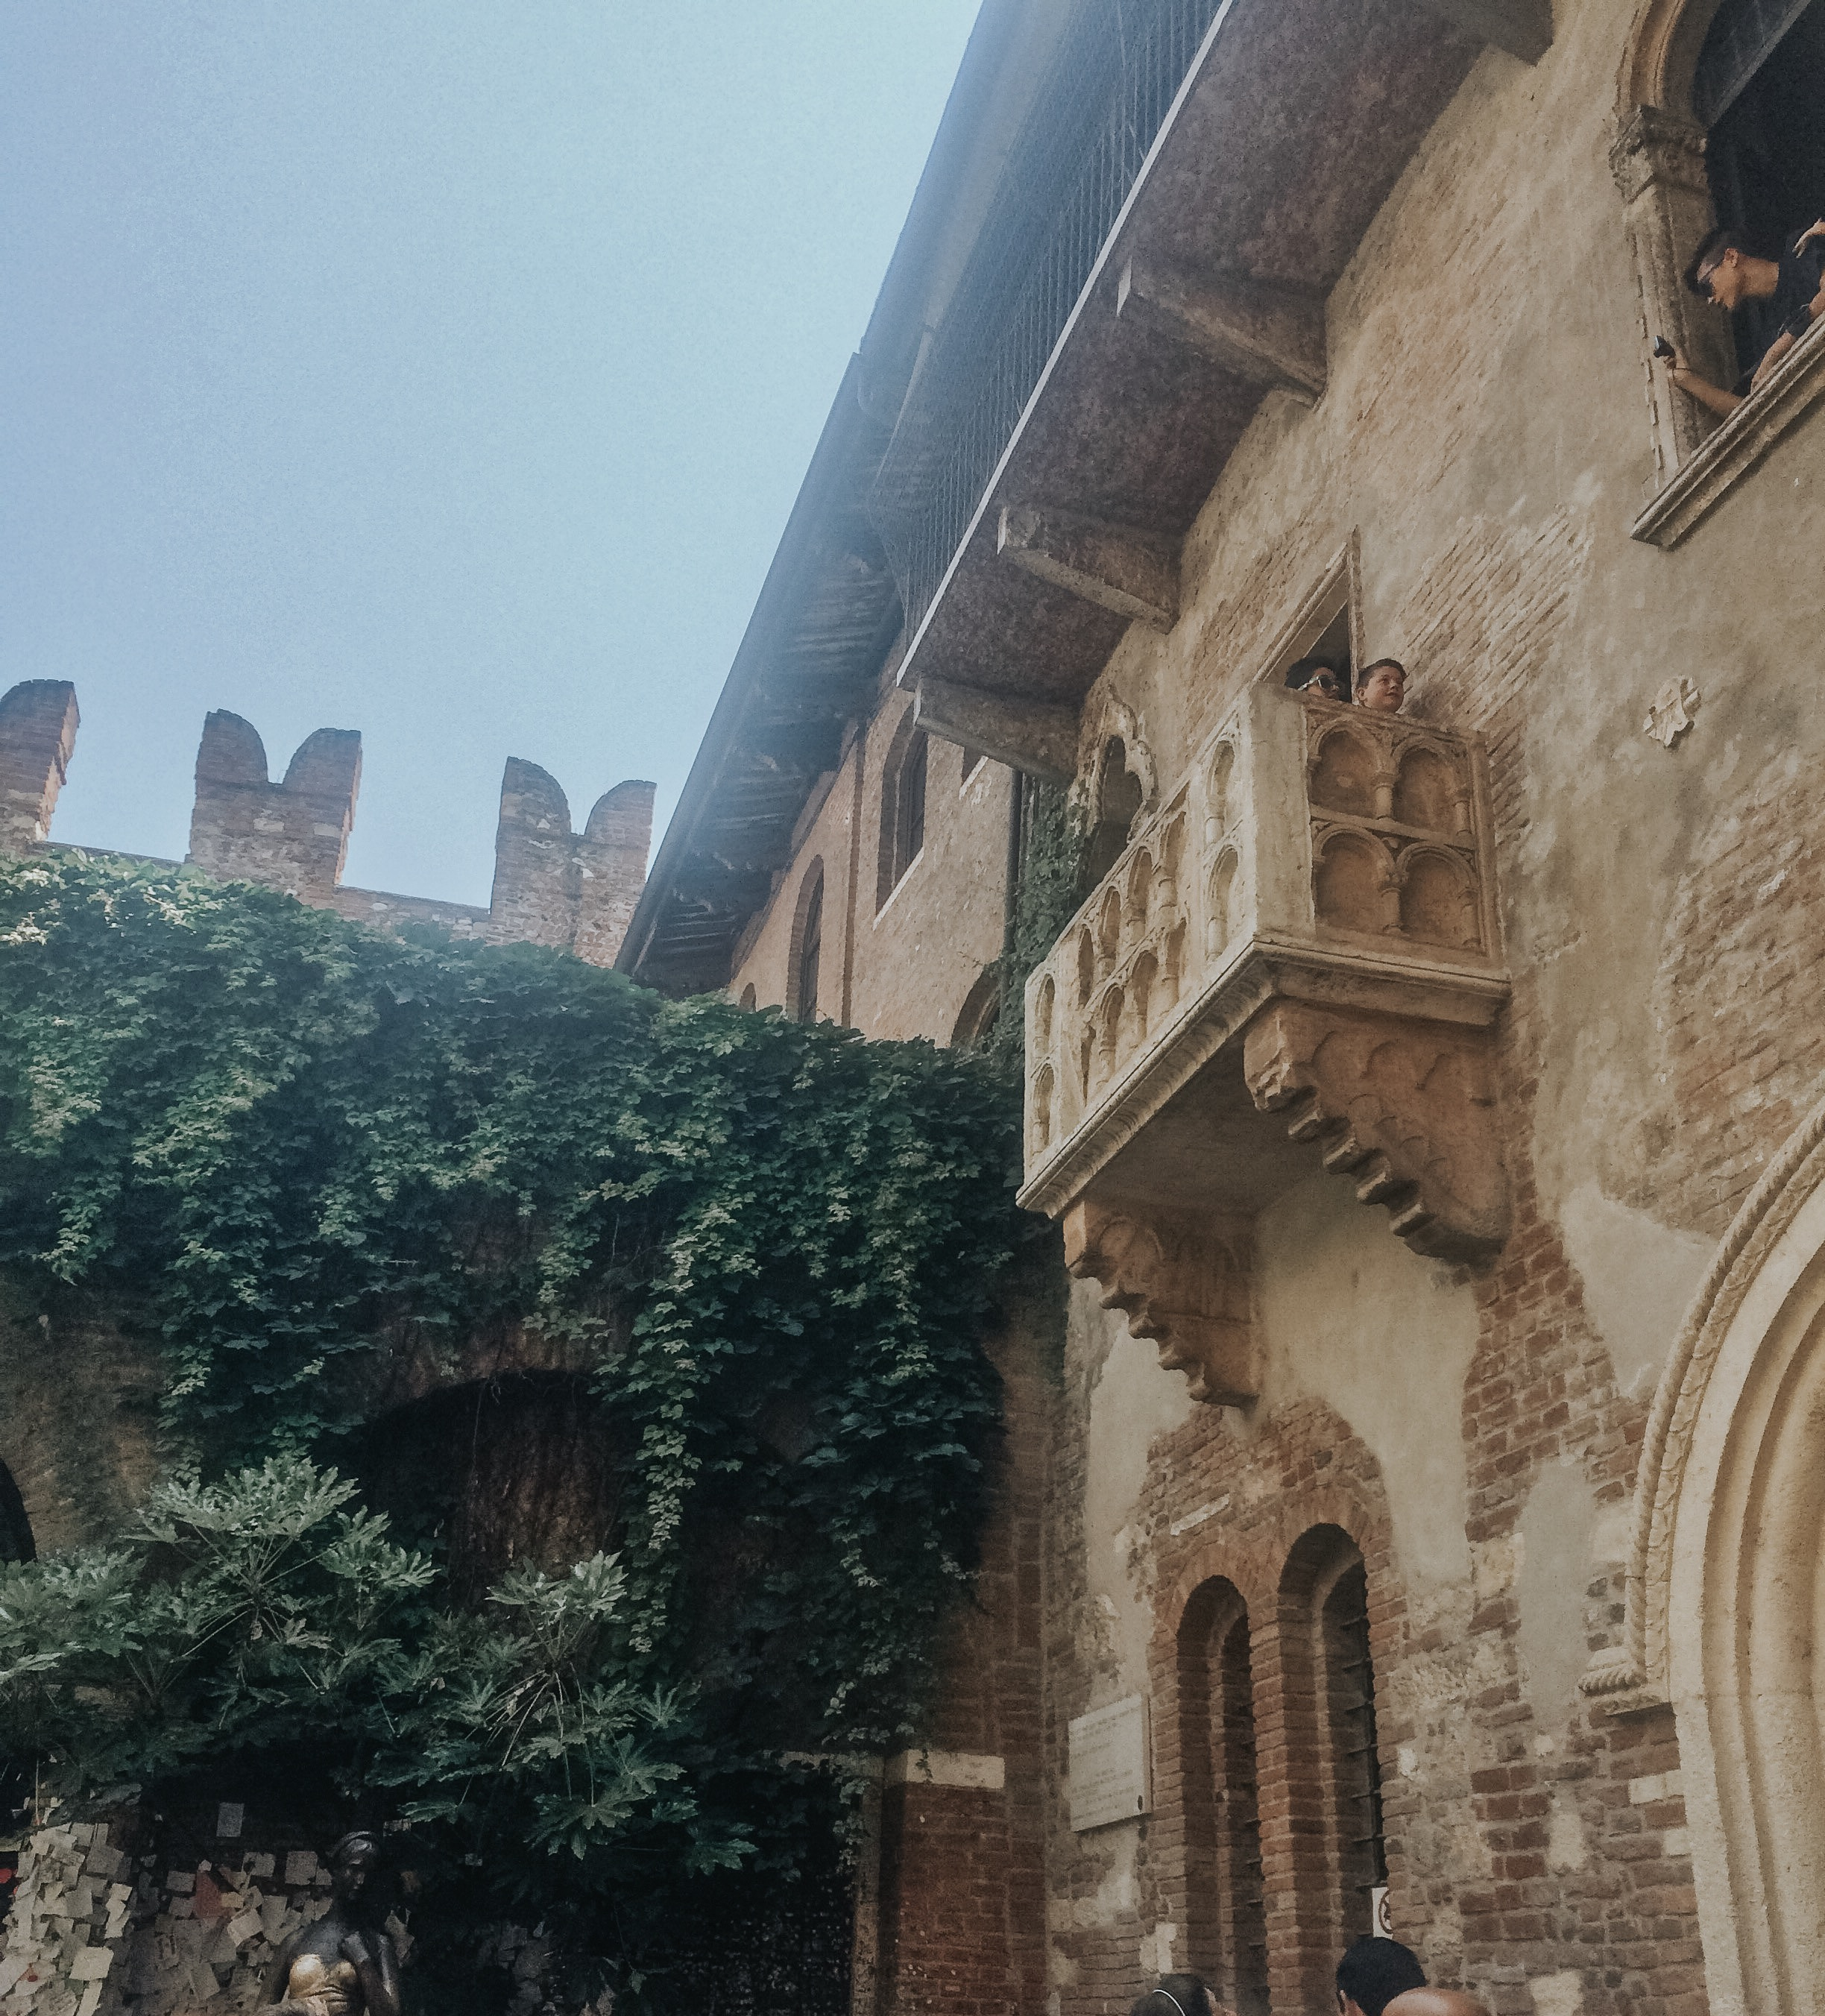 Romeo and Juliette's Balcony in Verona, Italy